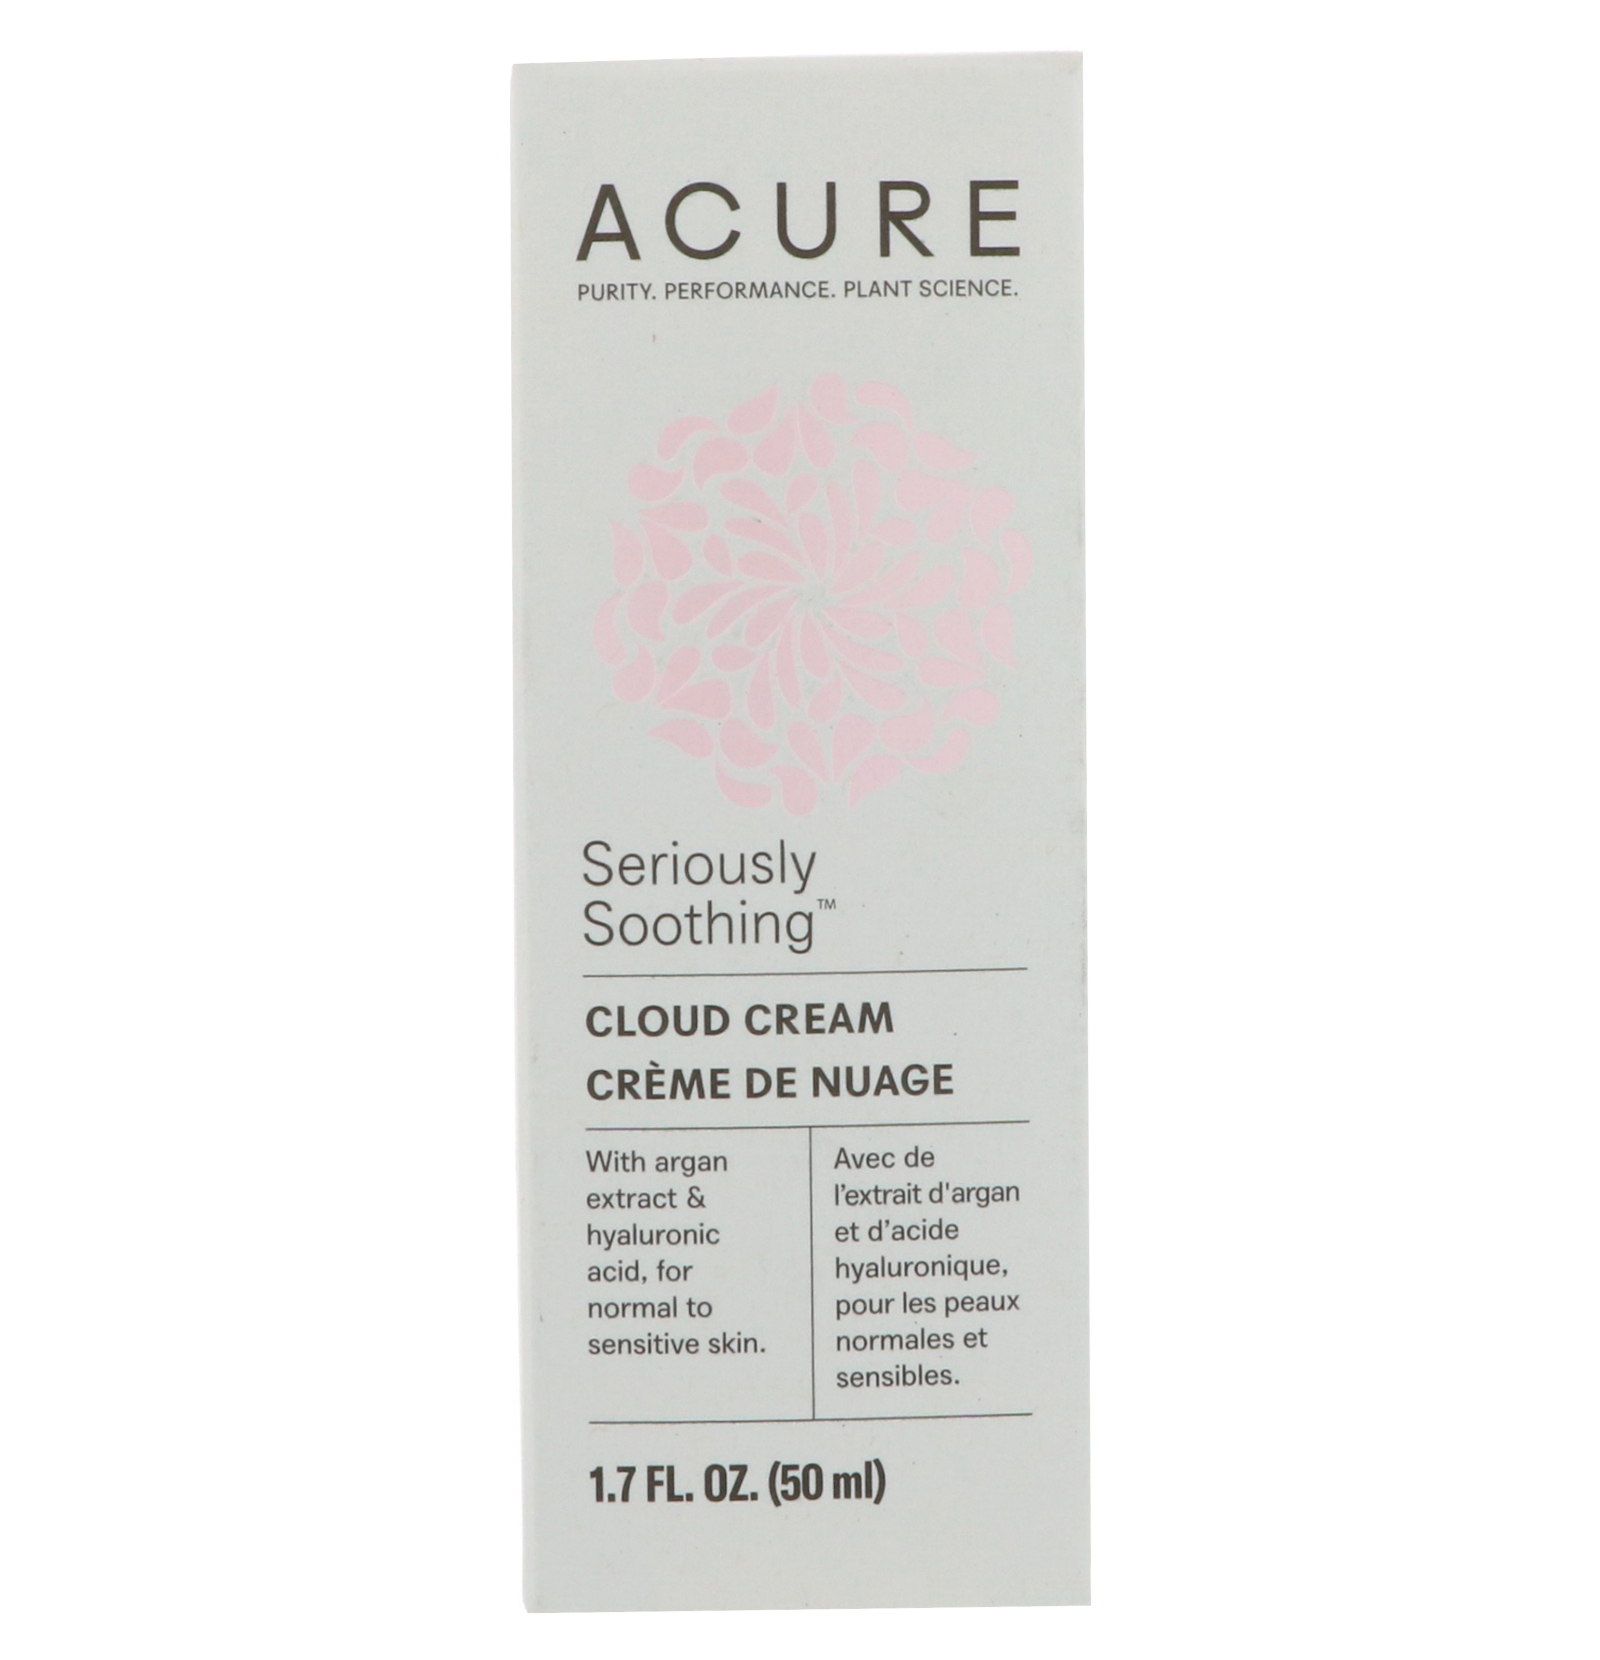 Acure Seriously Soothing Cloud Cream 1 7 Fl Oz 50 Ml